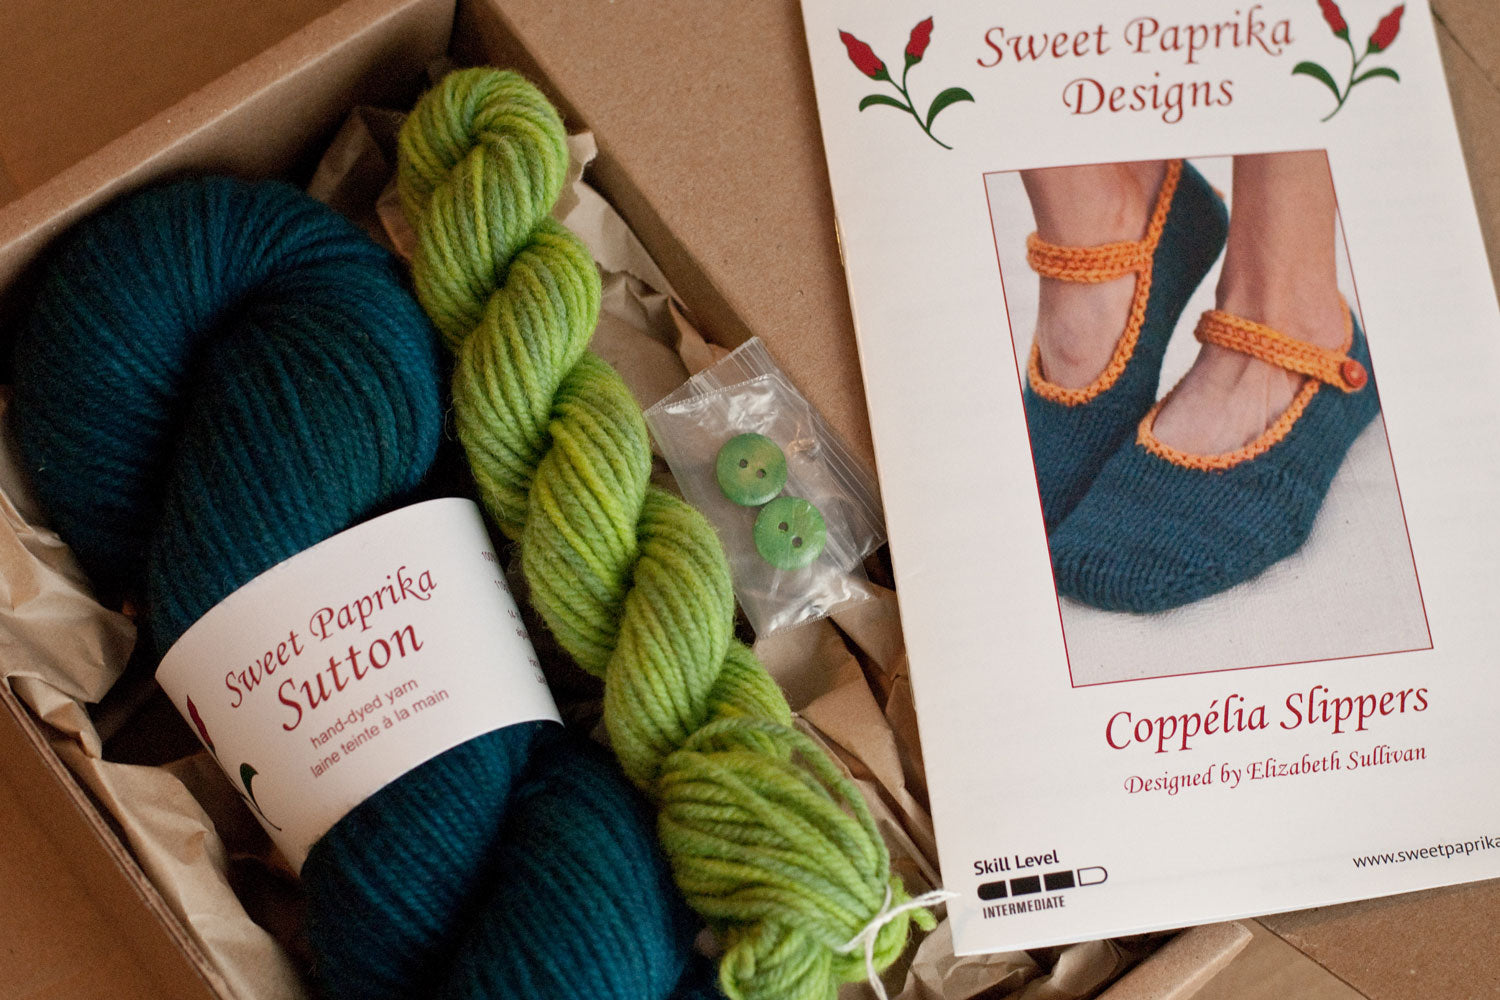 open cardboard box with kit components: pattern, large skein, mini skein and buttons